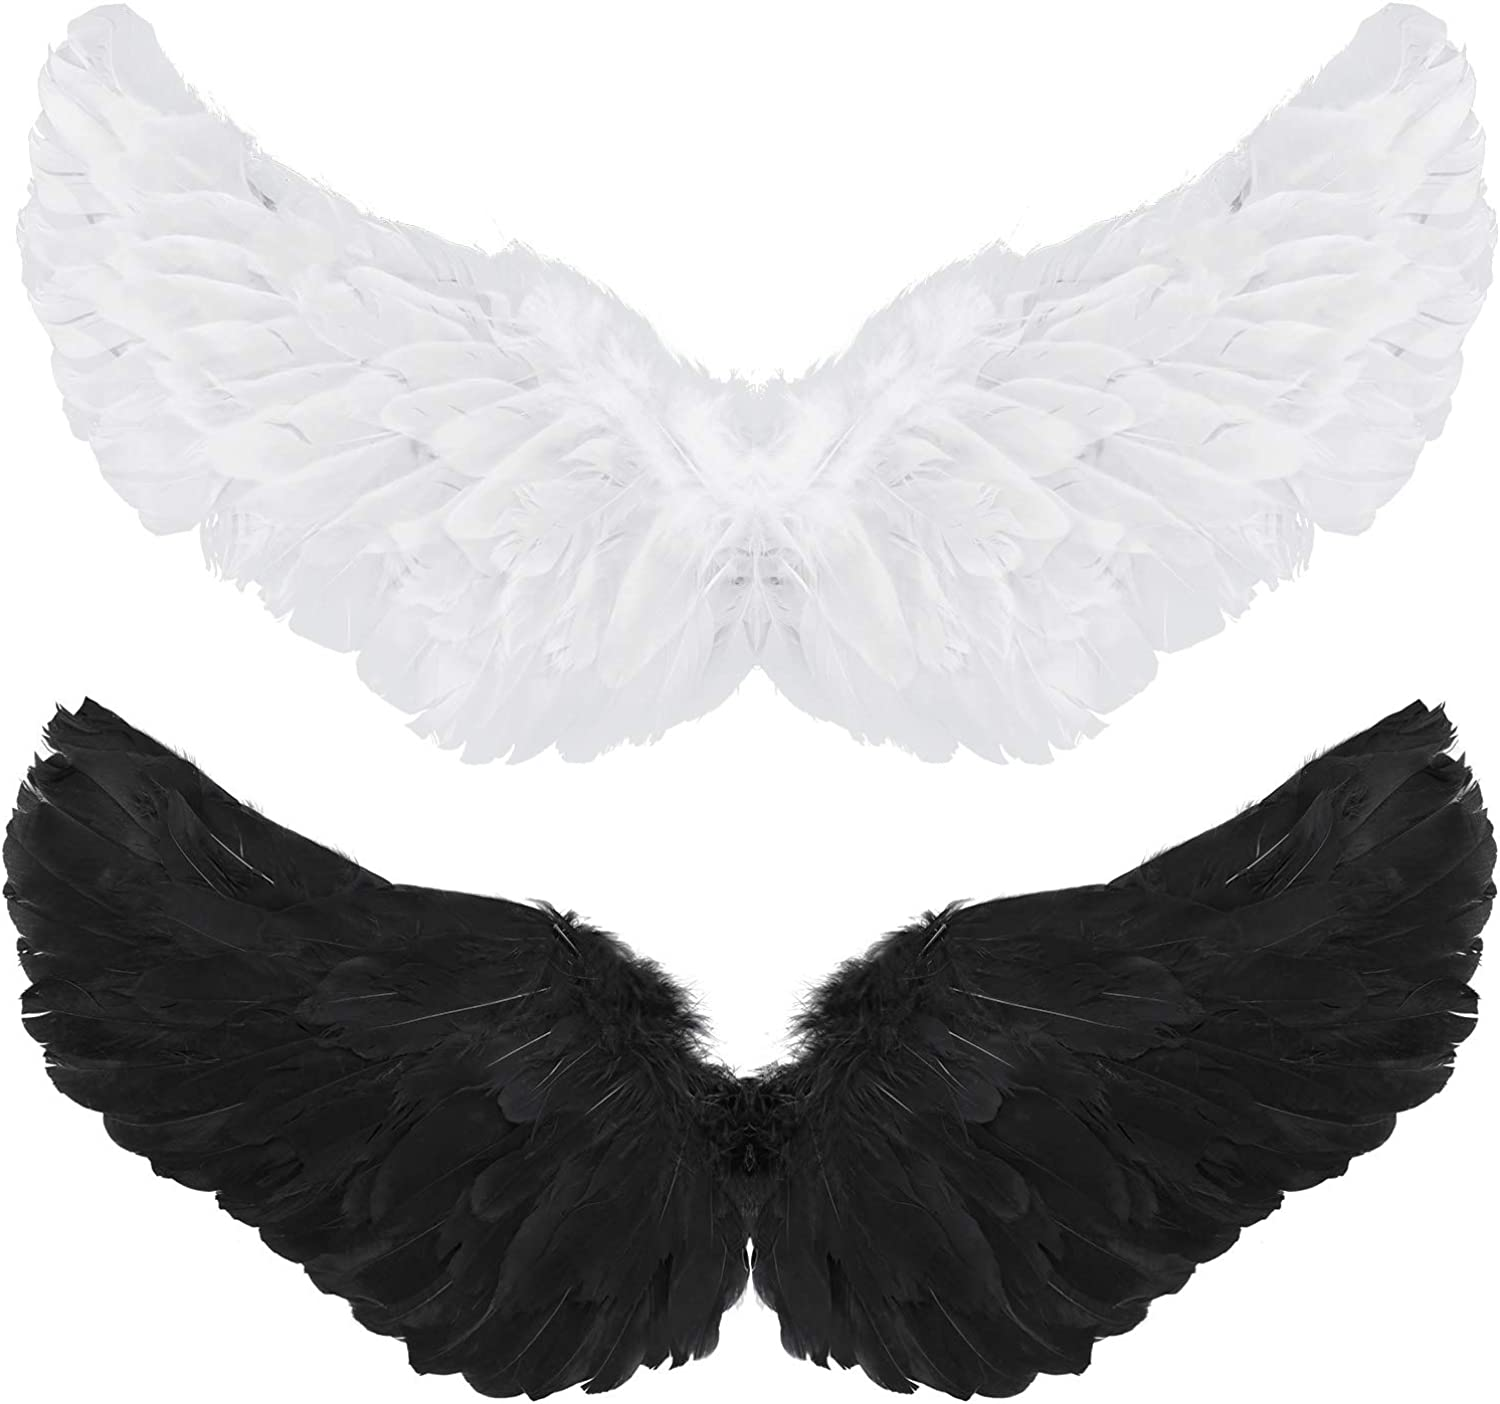 2 Pieces Angel Wings Feather Wings with Elastic Straps Halloween Costume Wings for Women Girls Cosplay (White, Black)